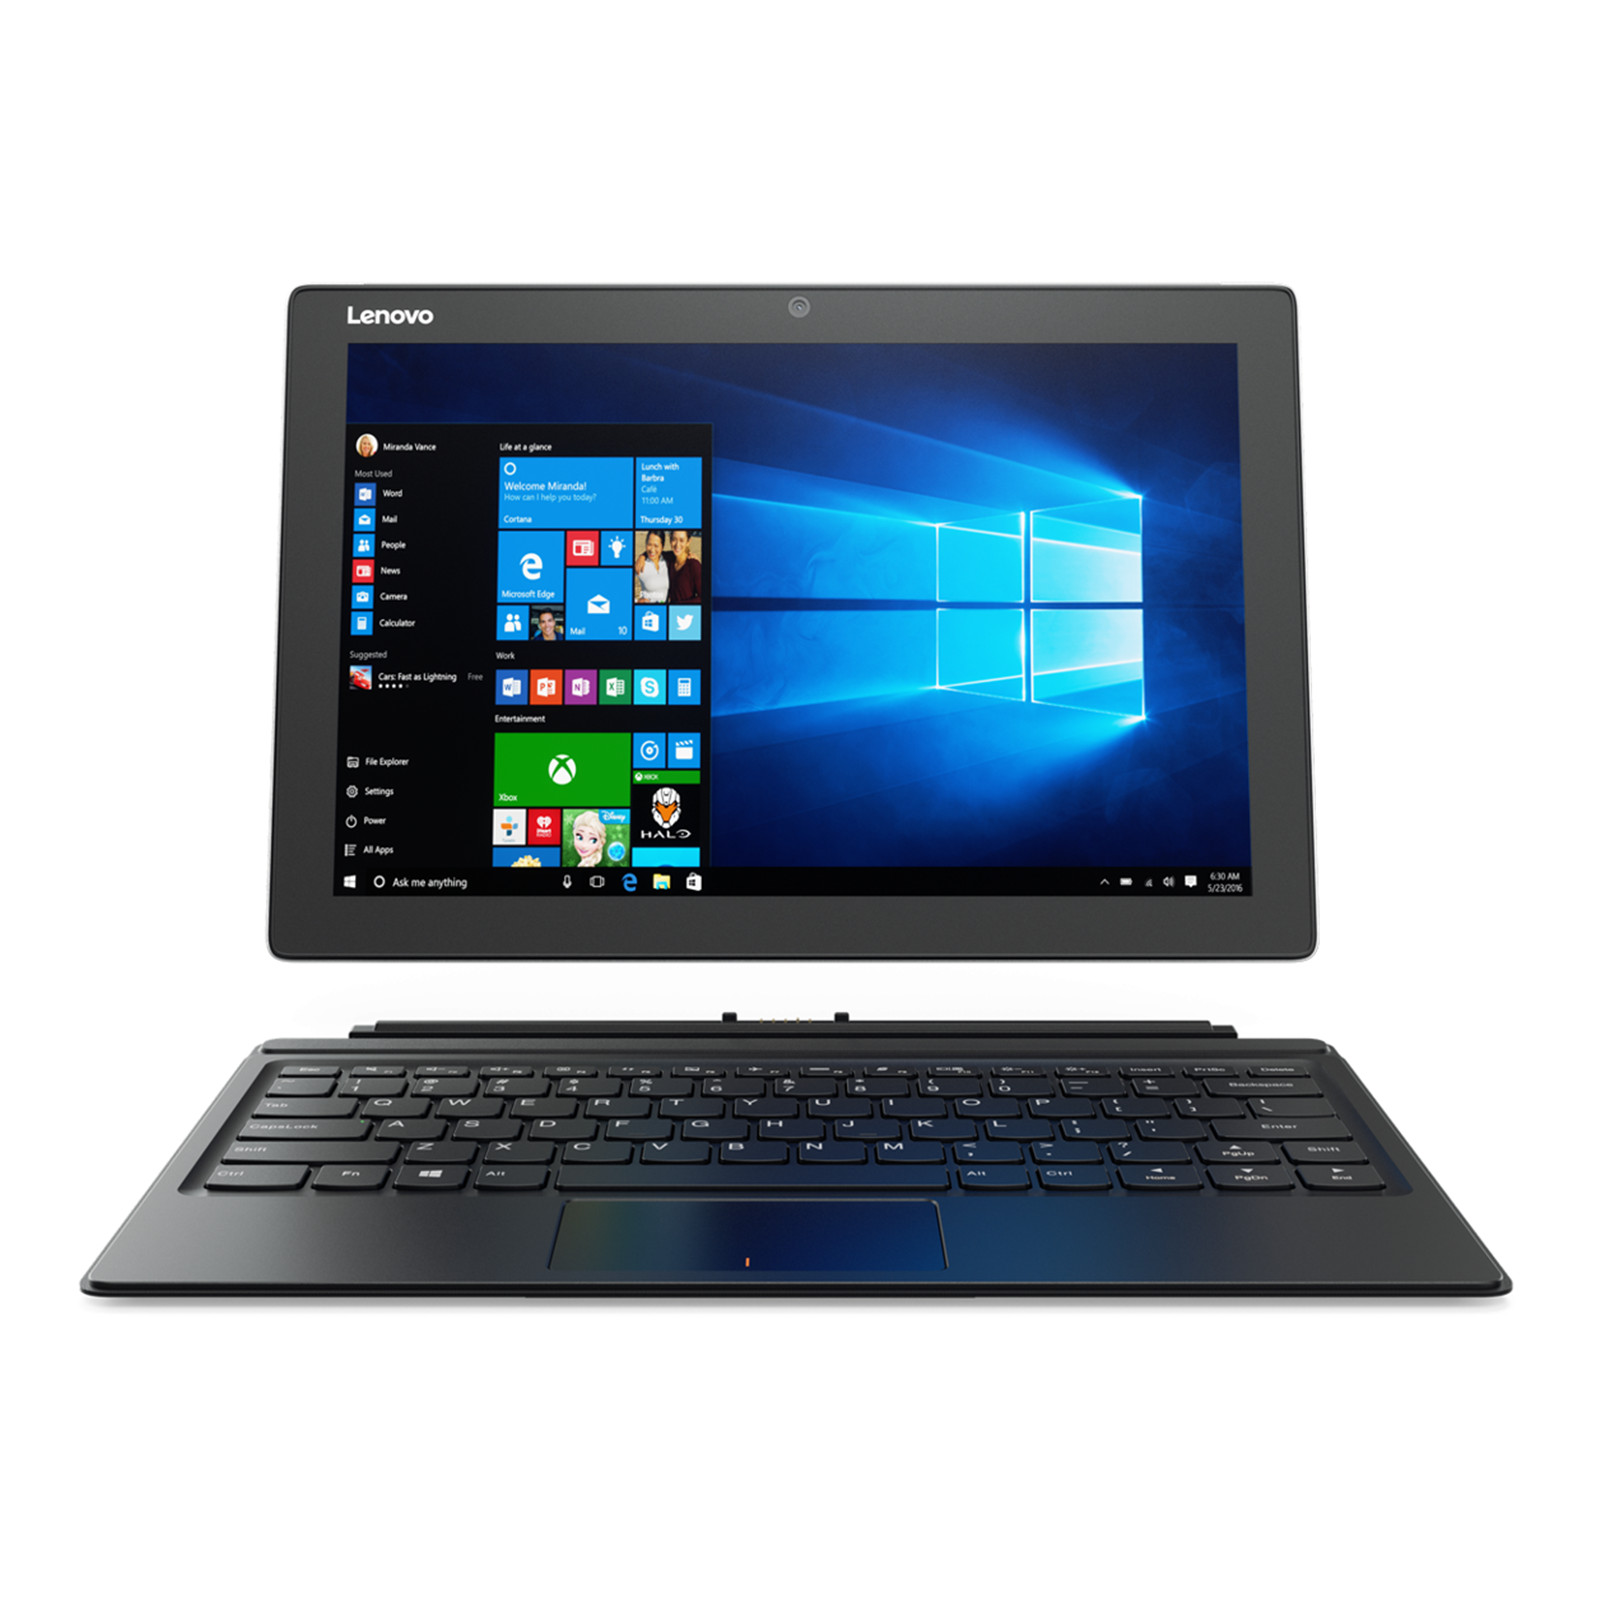 Lenovo Miix 510 4G/LTE Premium Business 2-in-1 Tablet 12.2